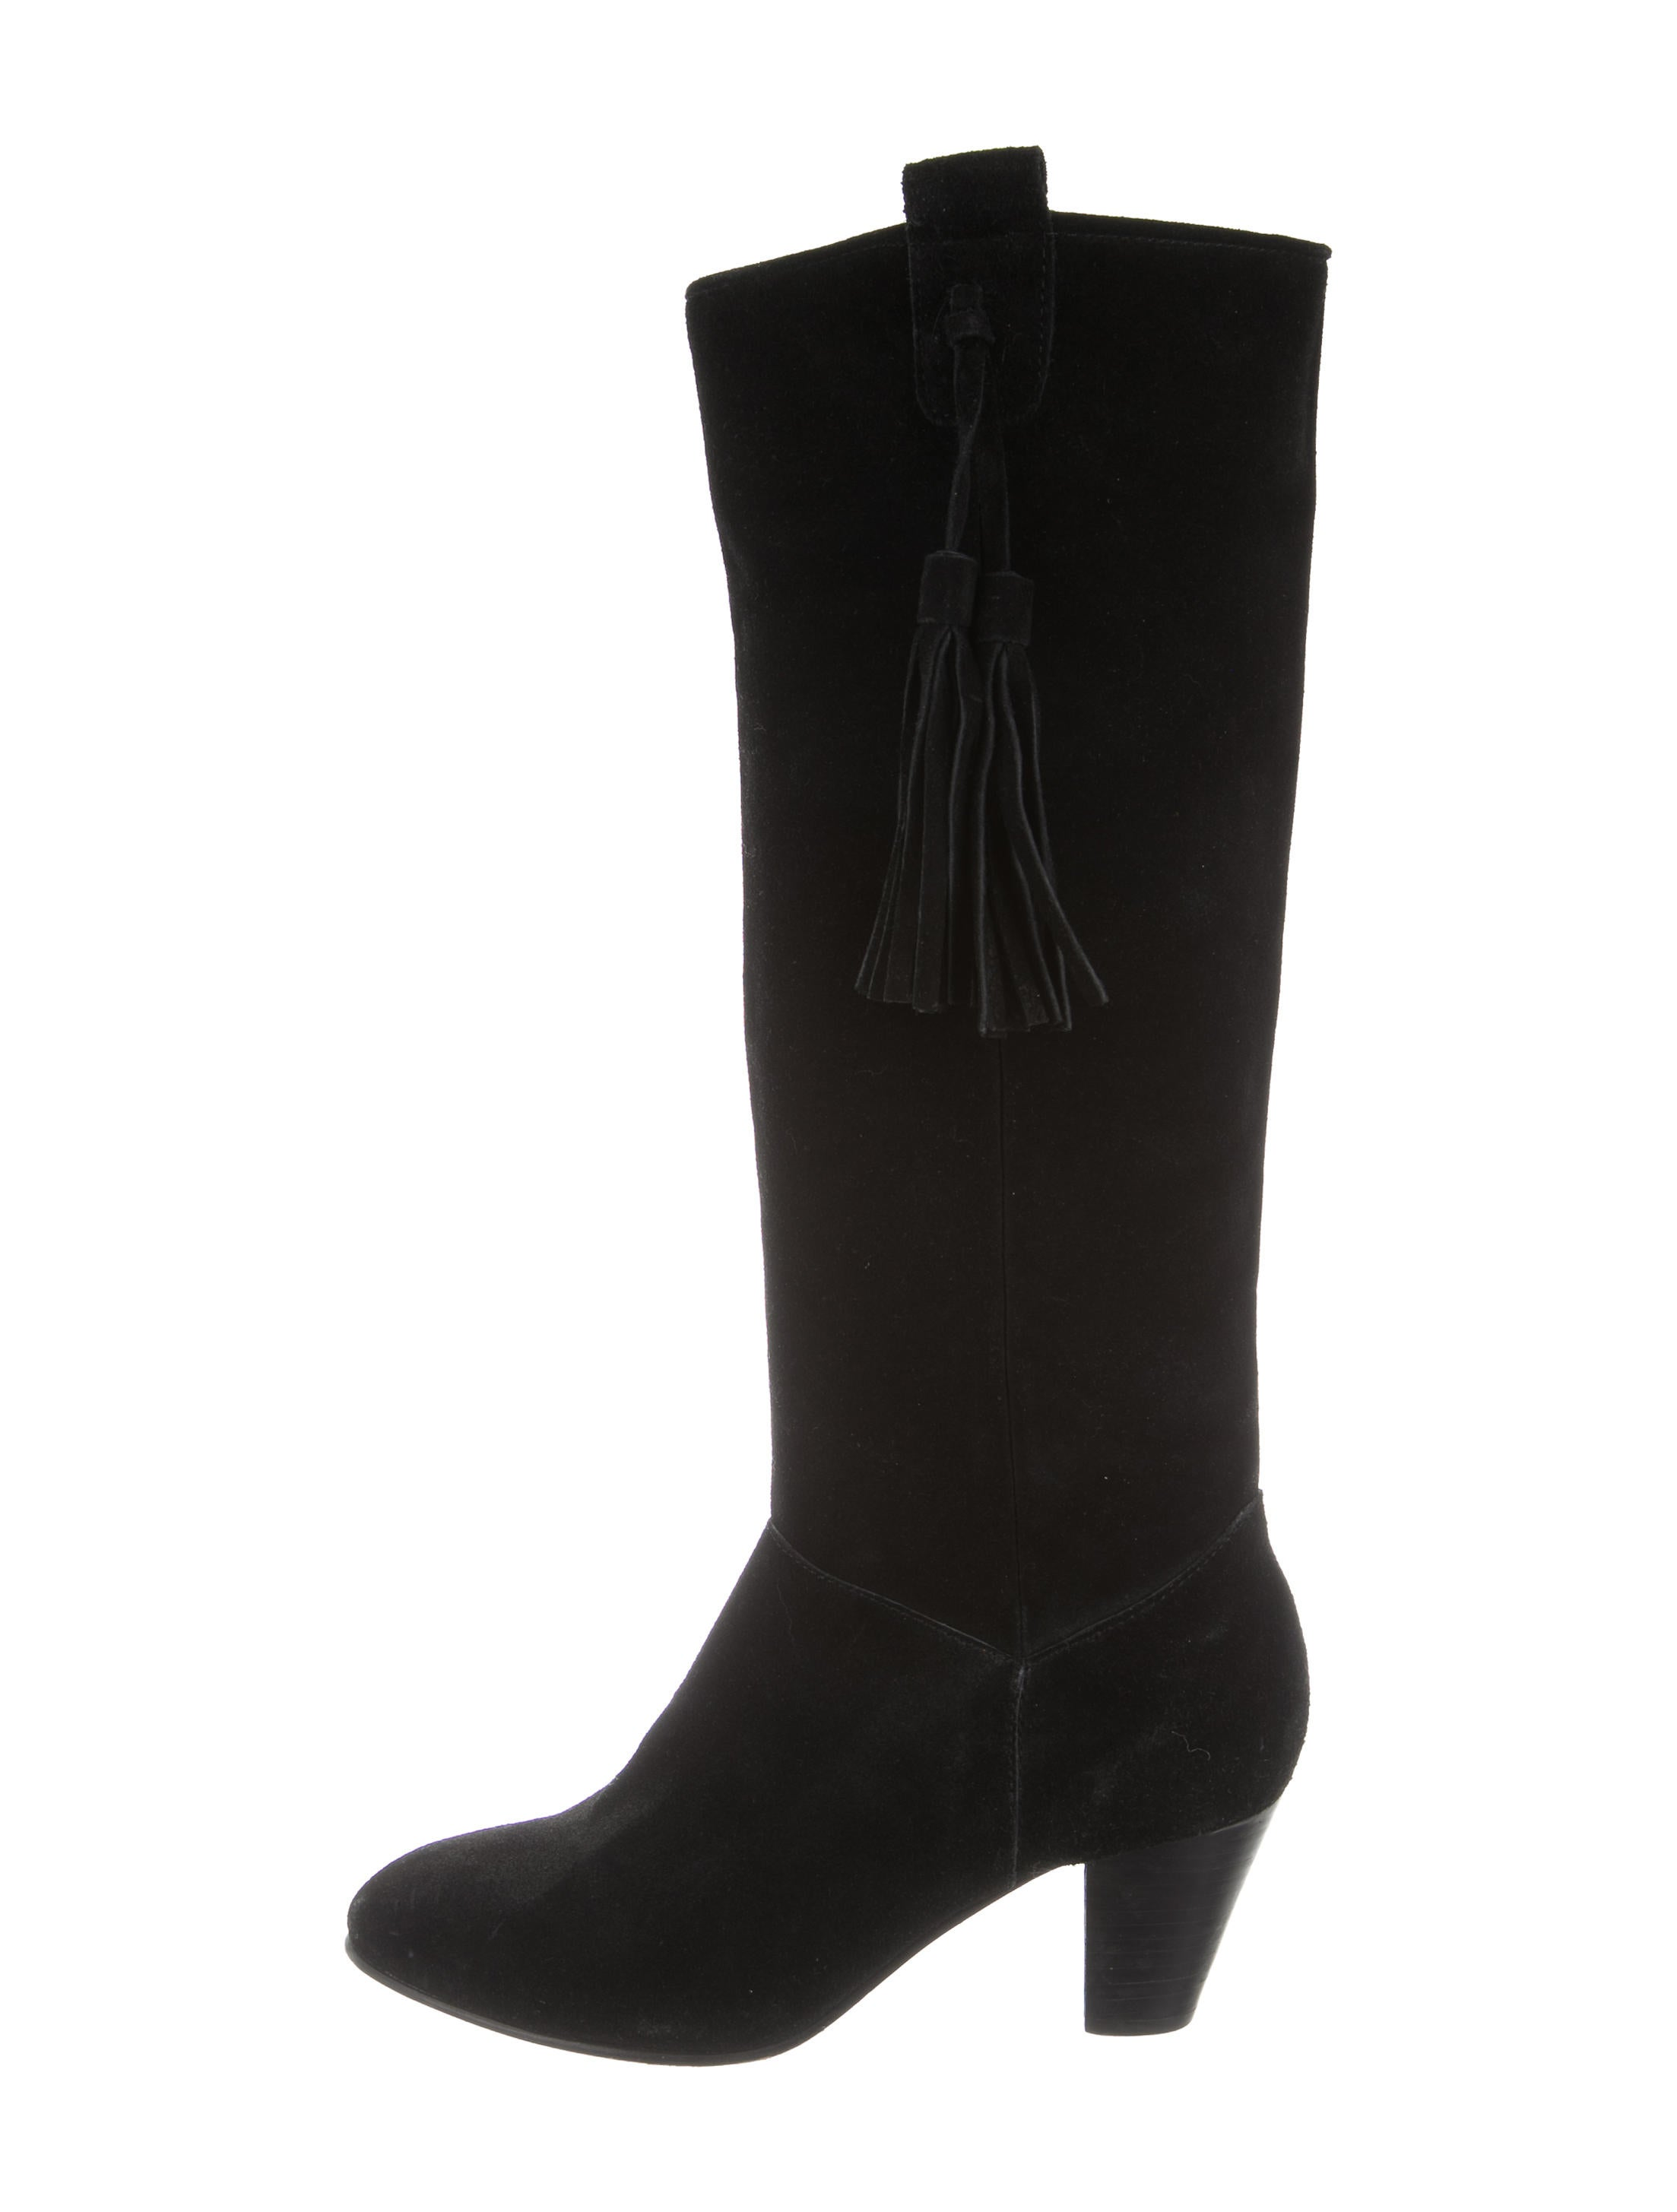 maje suede knee high boots shoes w2m25463 the realreal